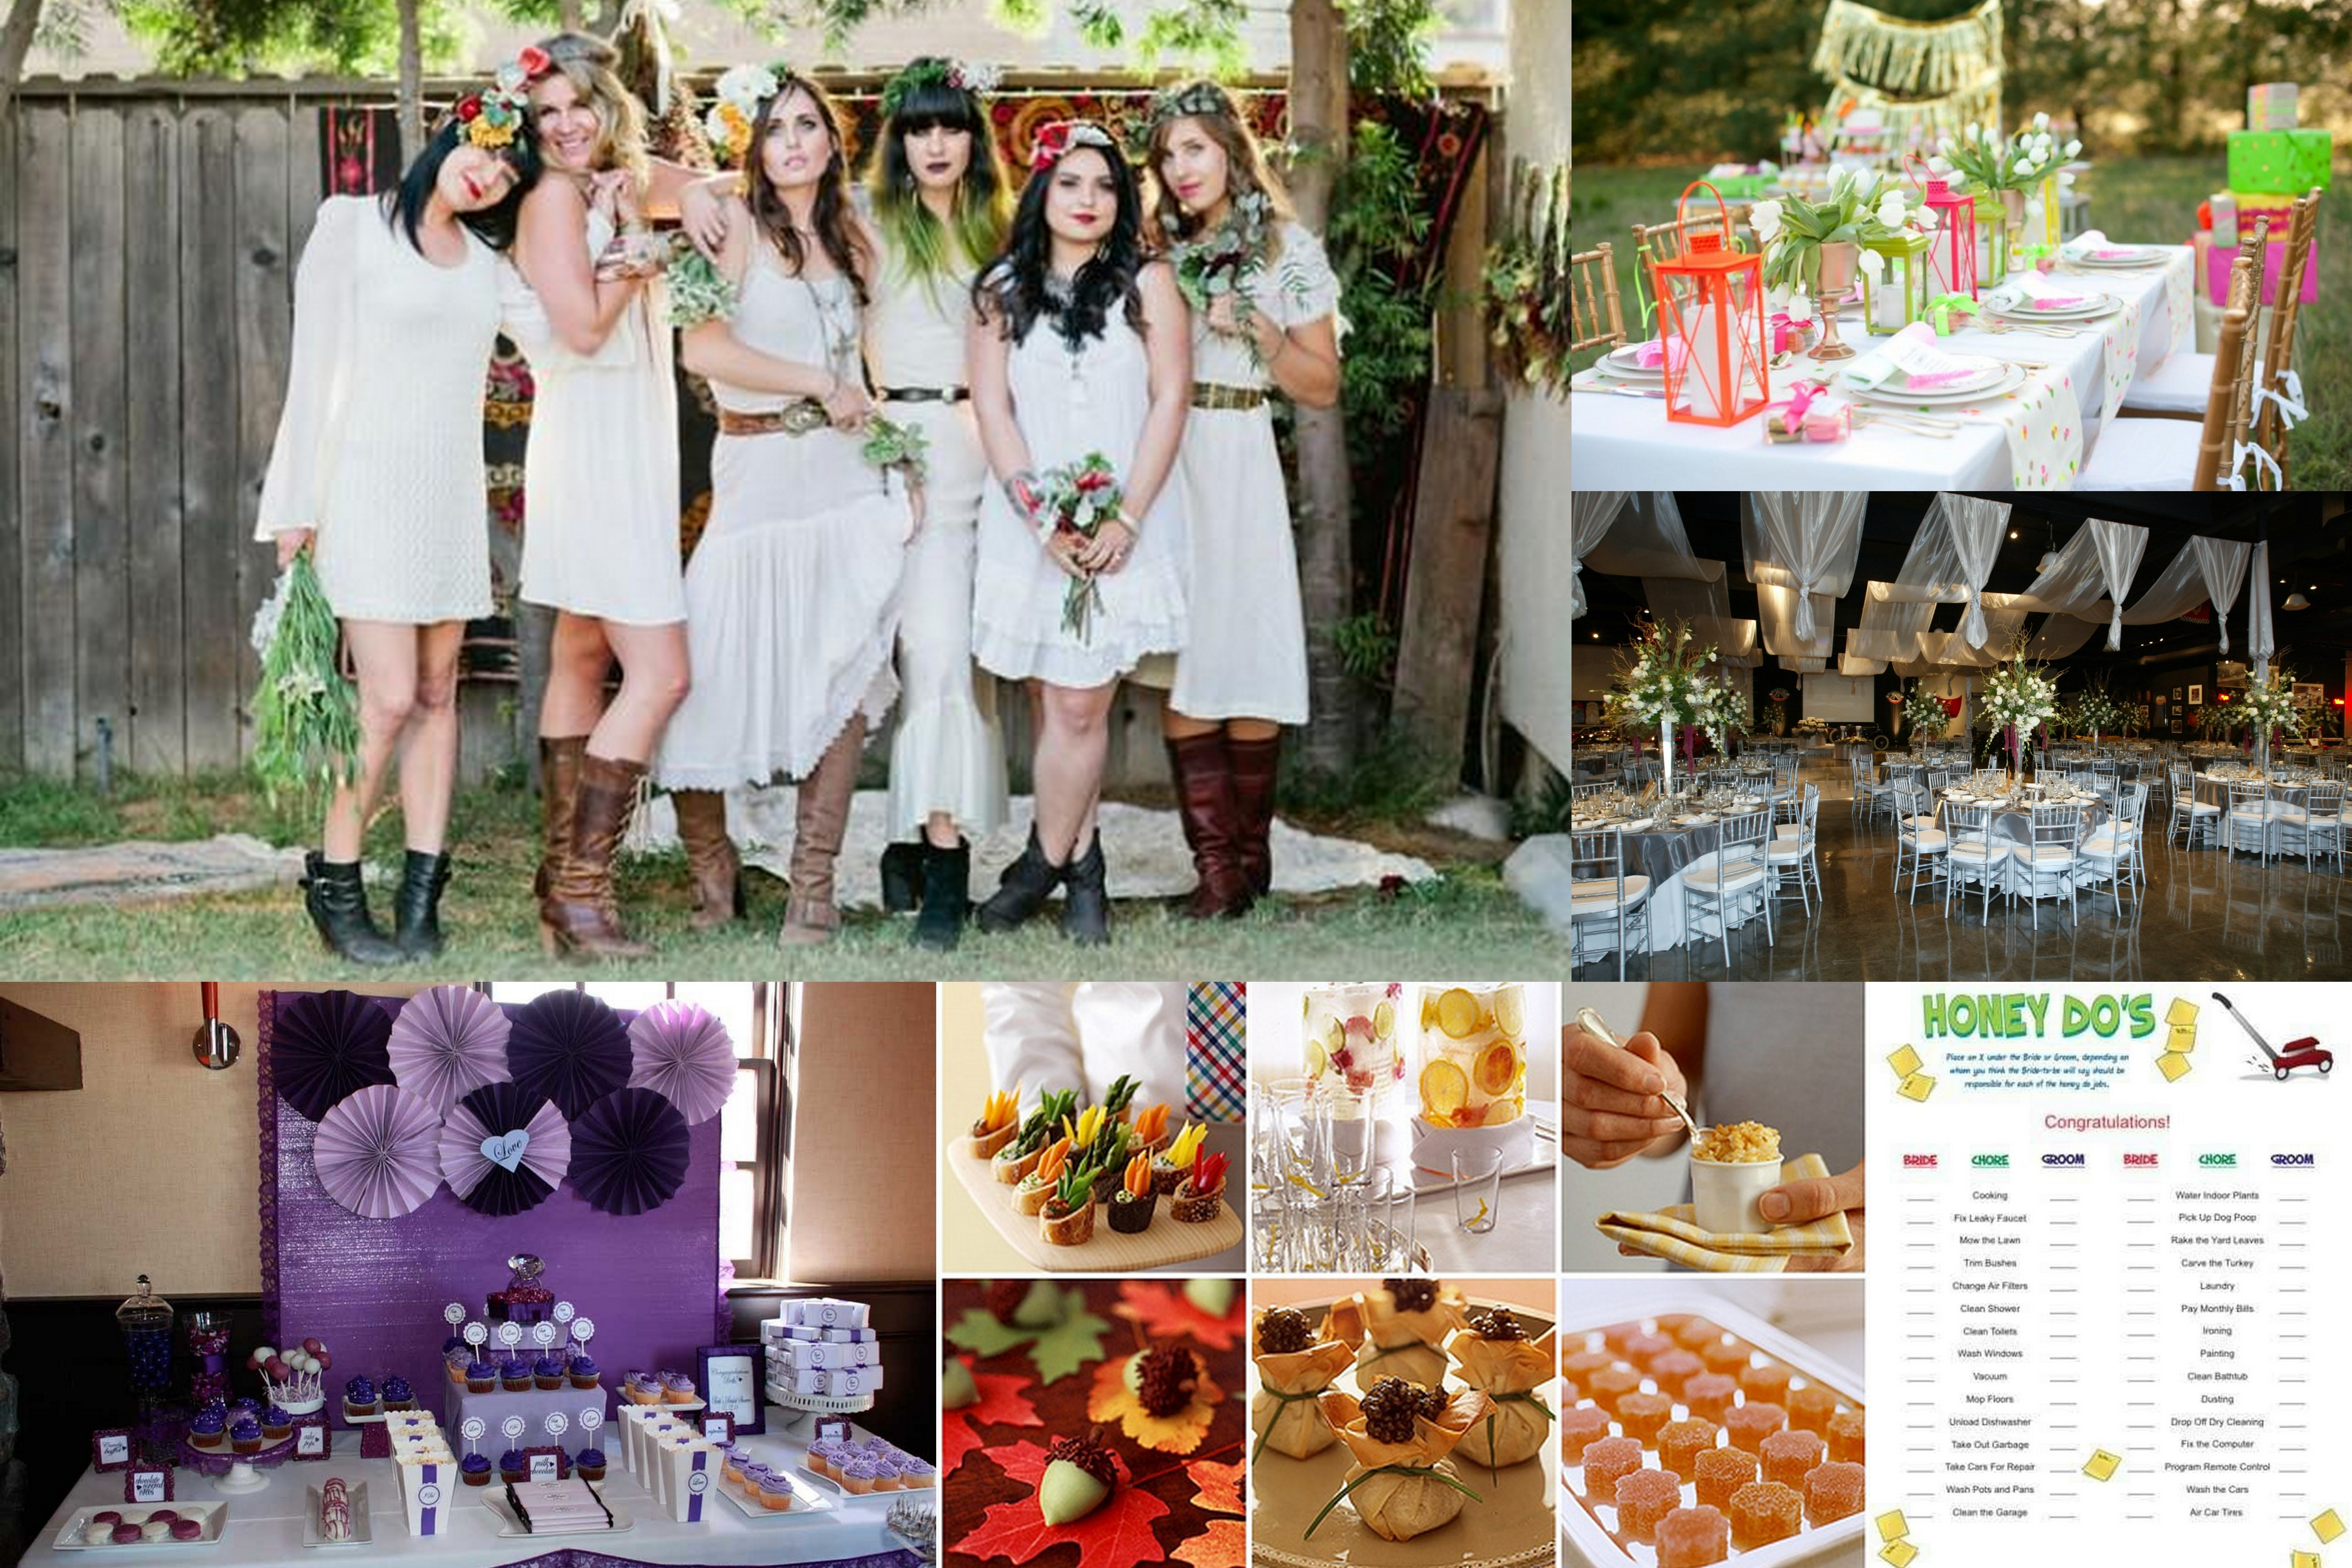 gifts guests for the bride wedding shower creative gift trends bridal photos of instagram